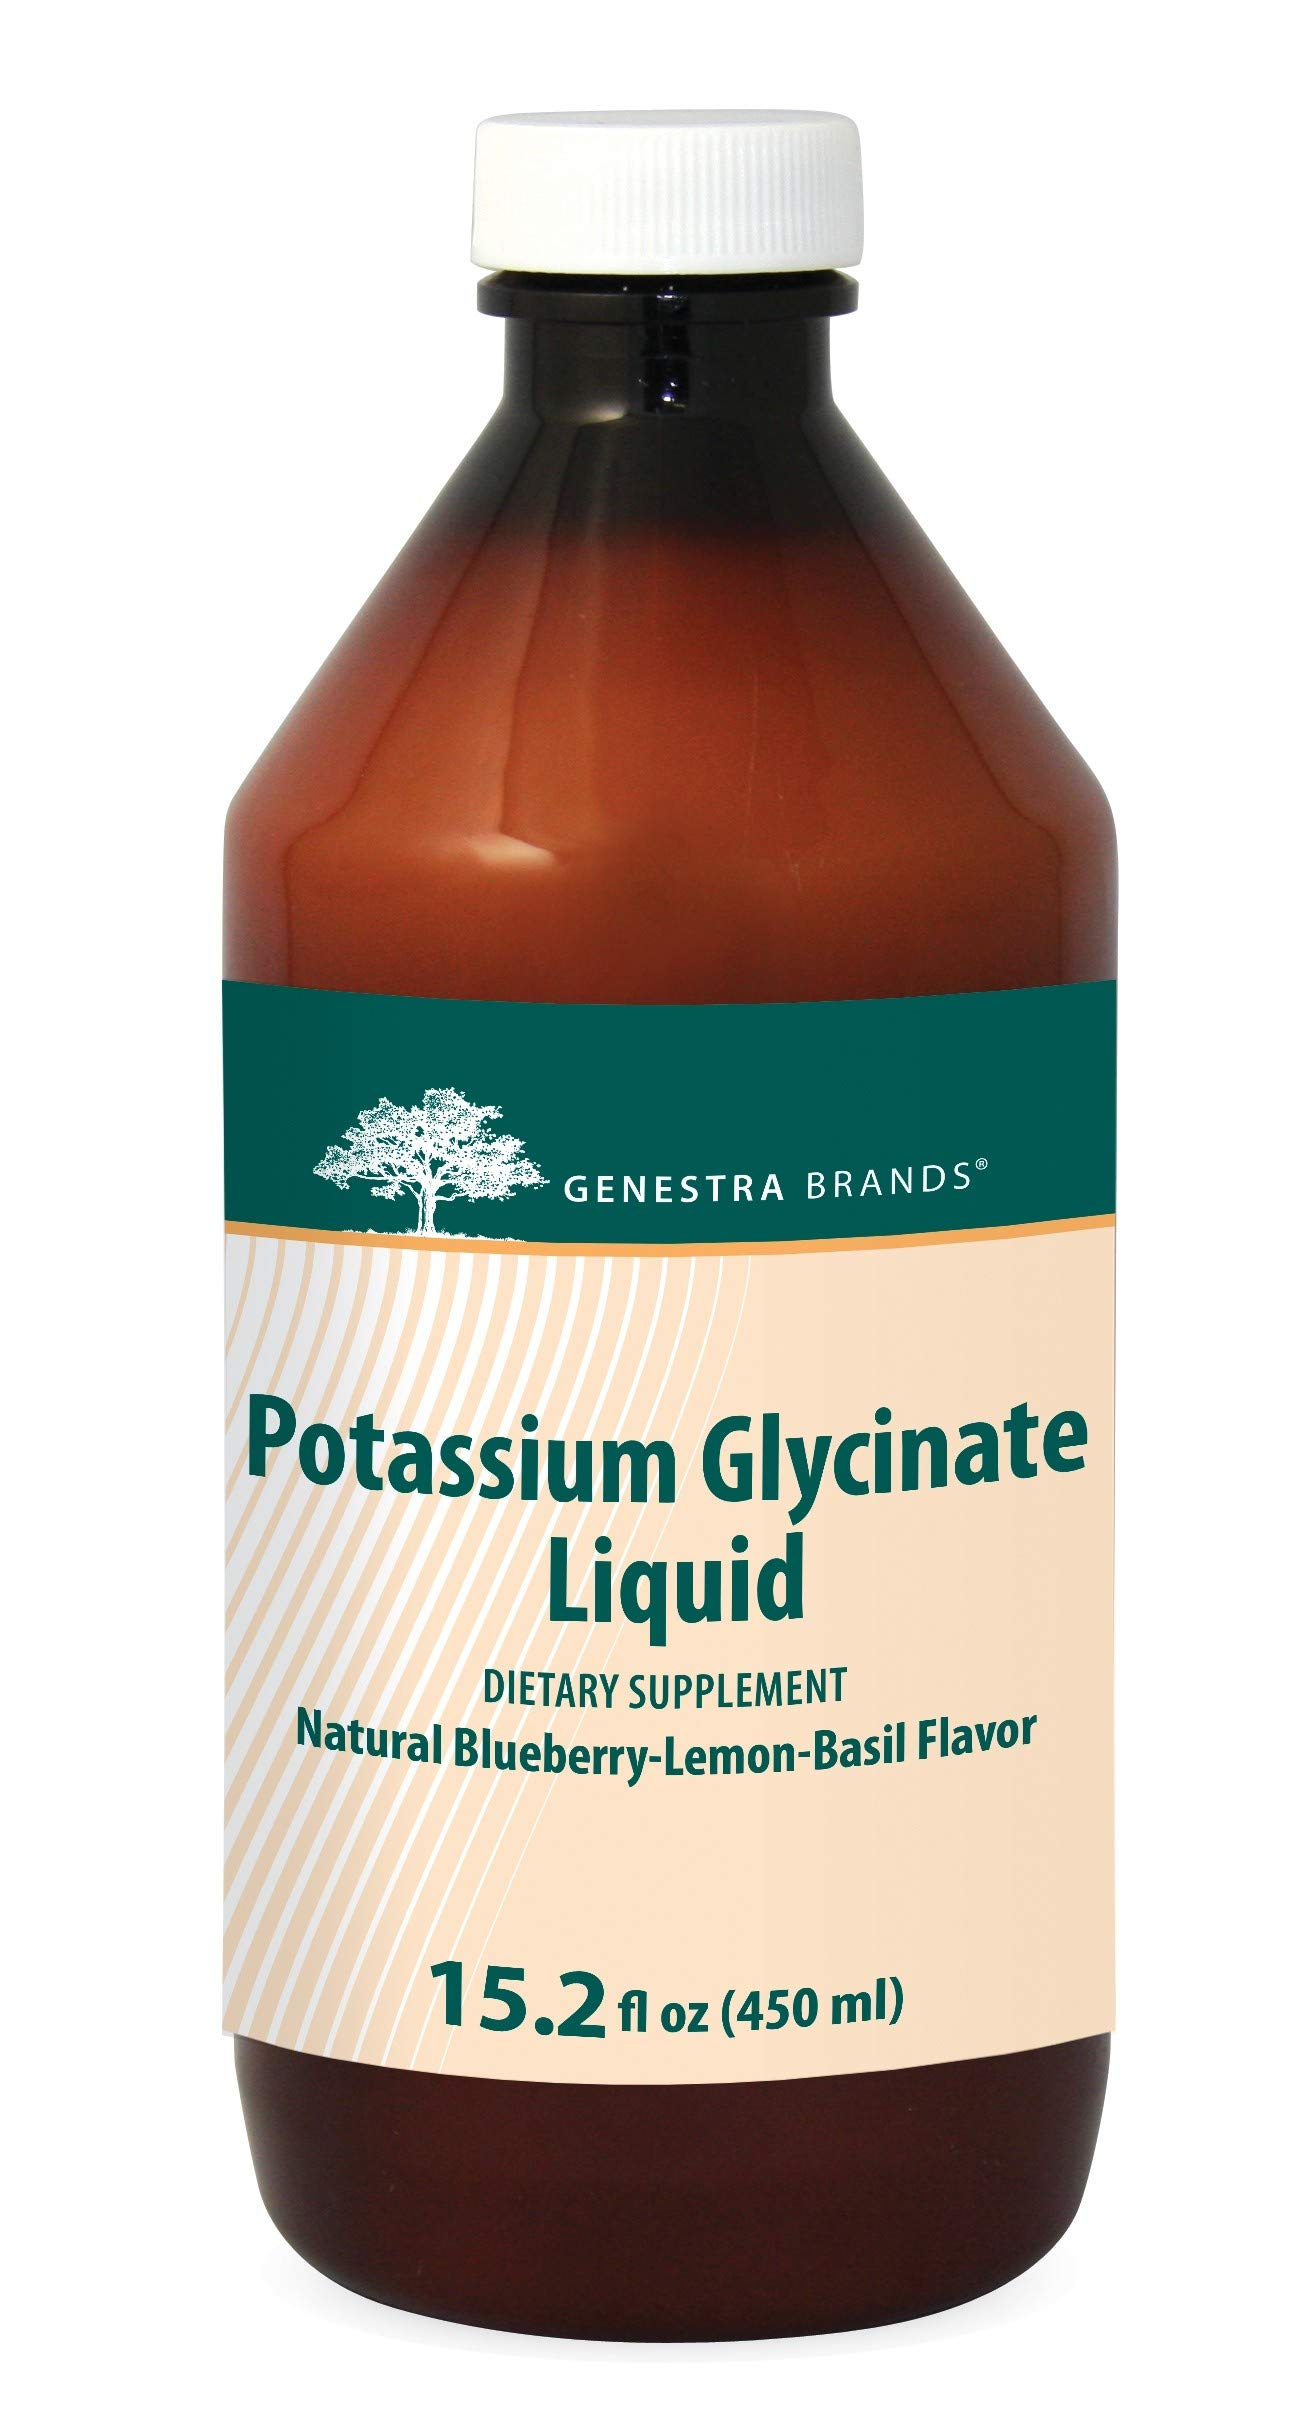 Genestra Brands - Potassium Glycinate Liquid - an Electrolyte for The Maintenance of The Good Health* - 15.2 fl (450 ml)